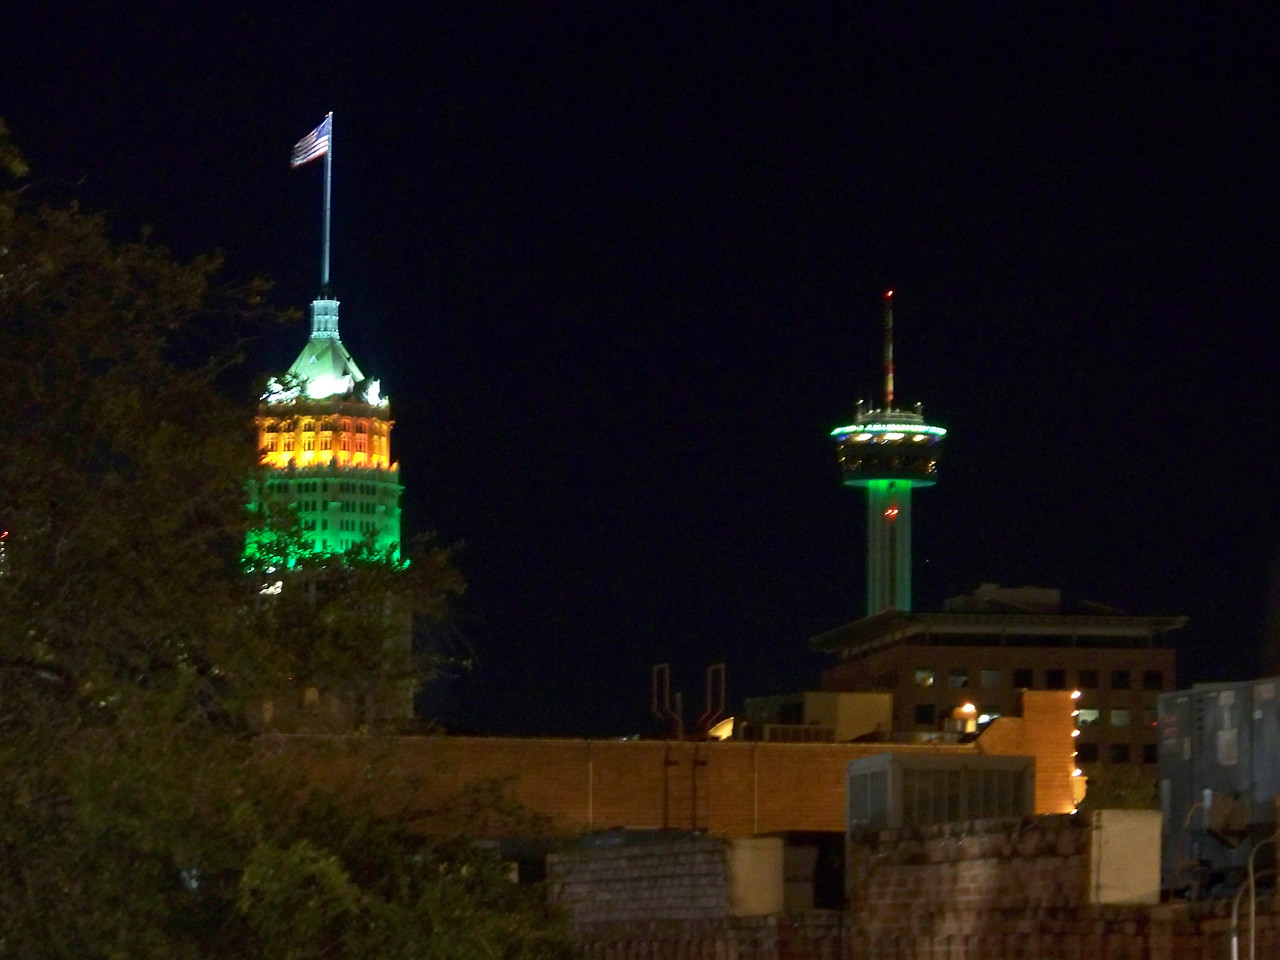 I took this shot from the top floor of the parking garage where we had left the car.  There's San Antonio's two tall icons--the Tower Life Building and the Tower of the Americas.